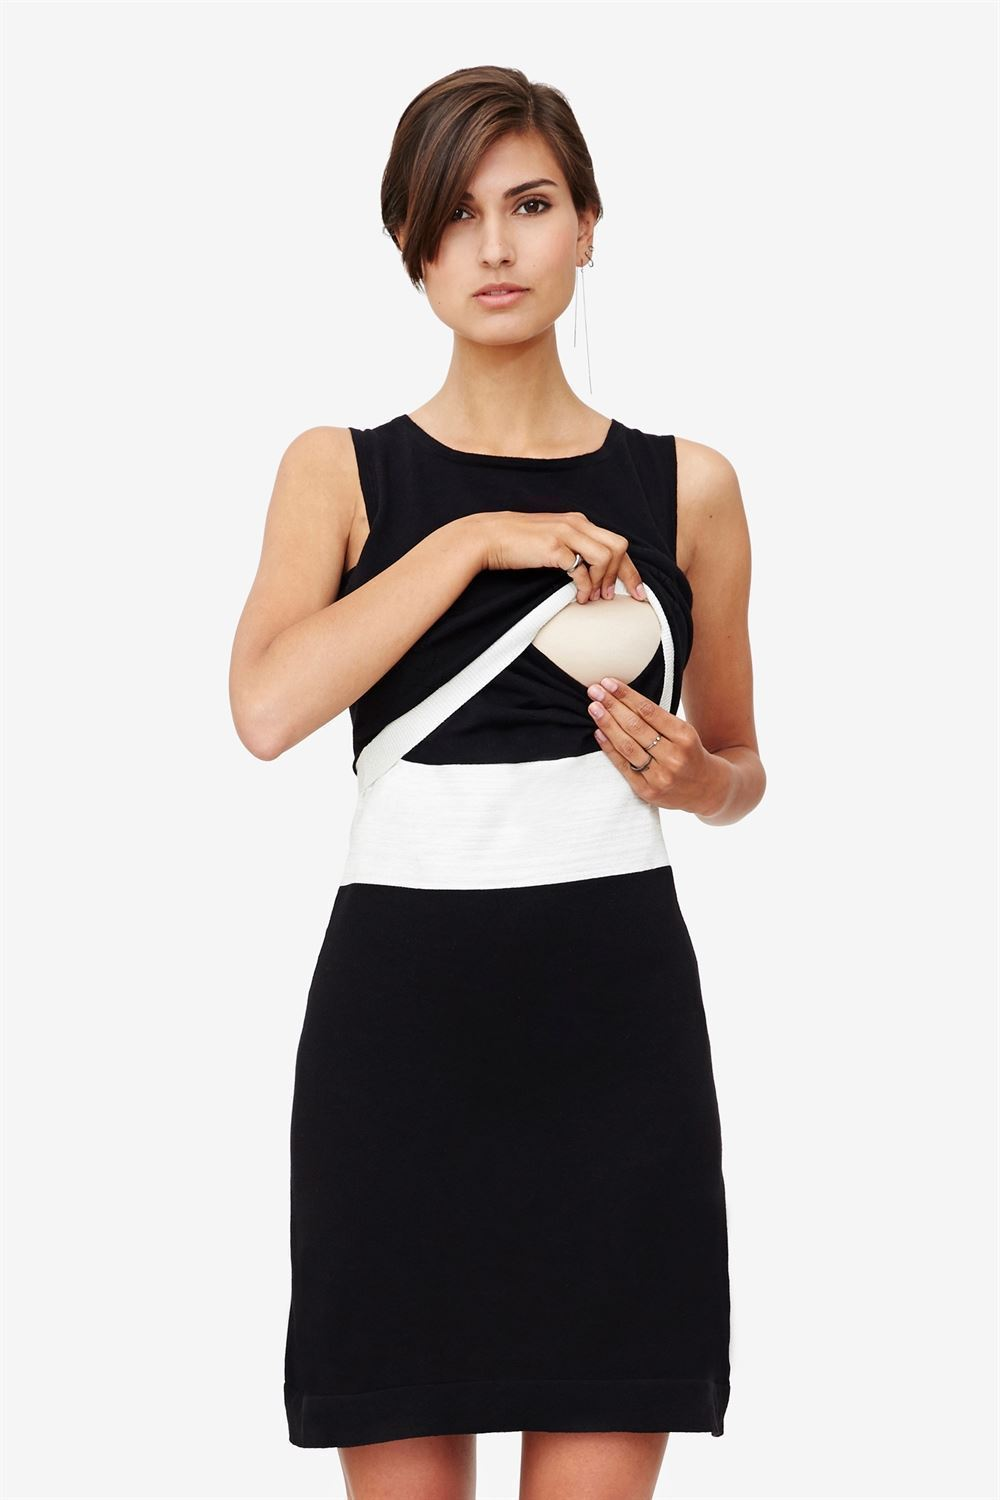 Black nursing dress with slim white waistline - nursing demonstation - with nursing access